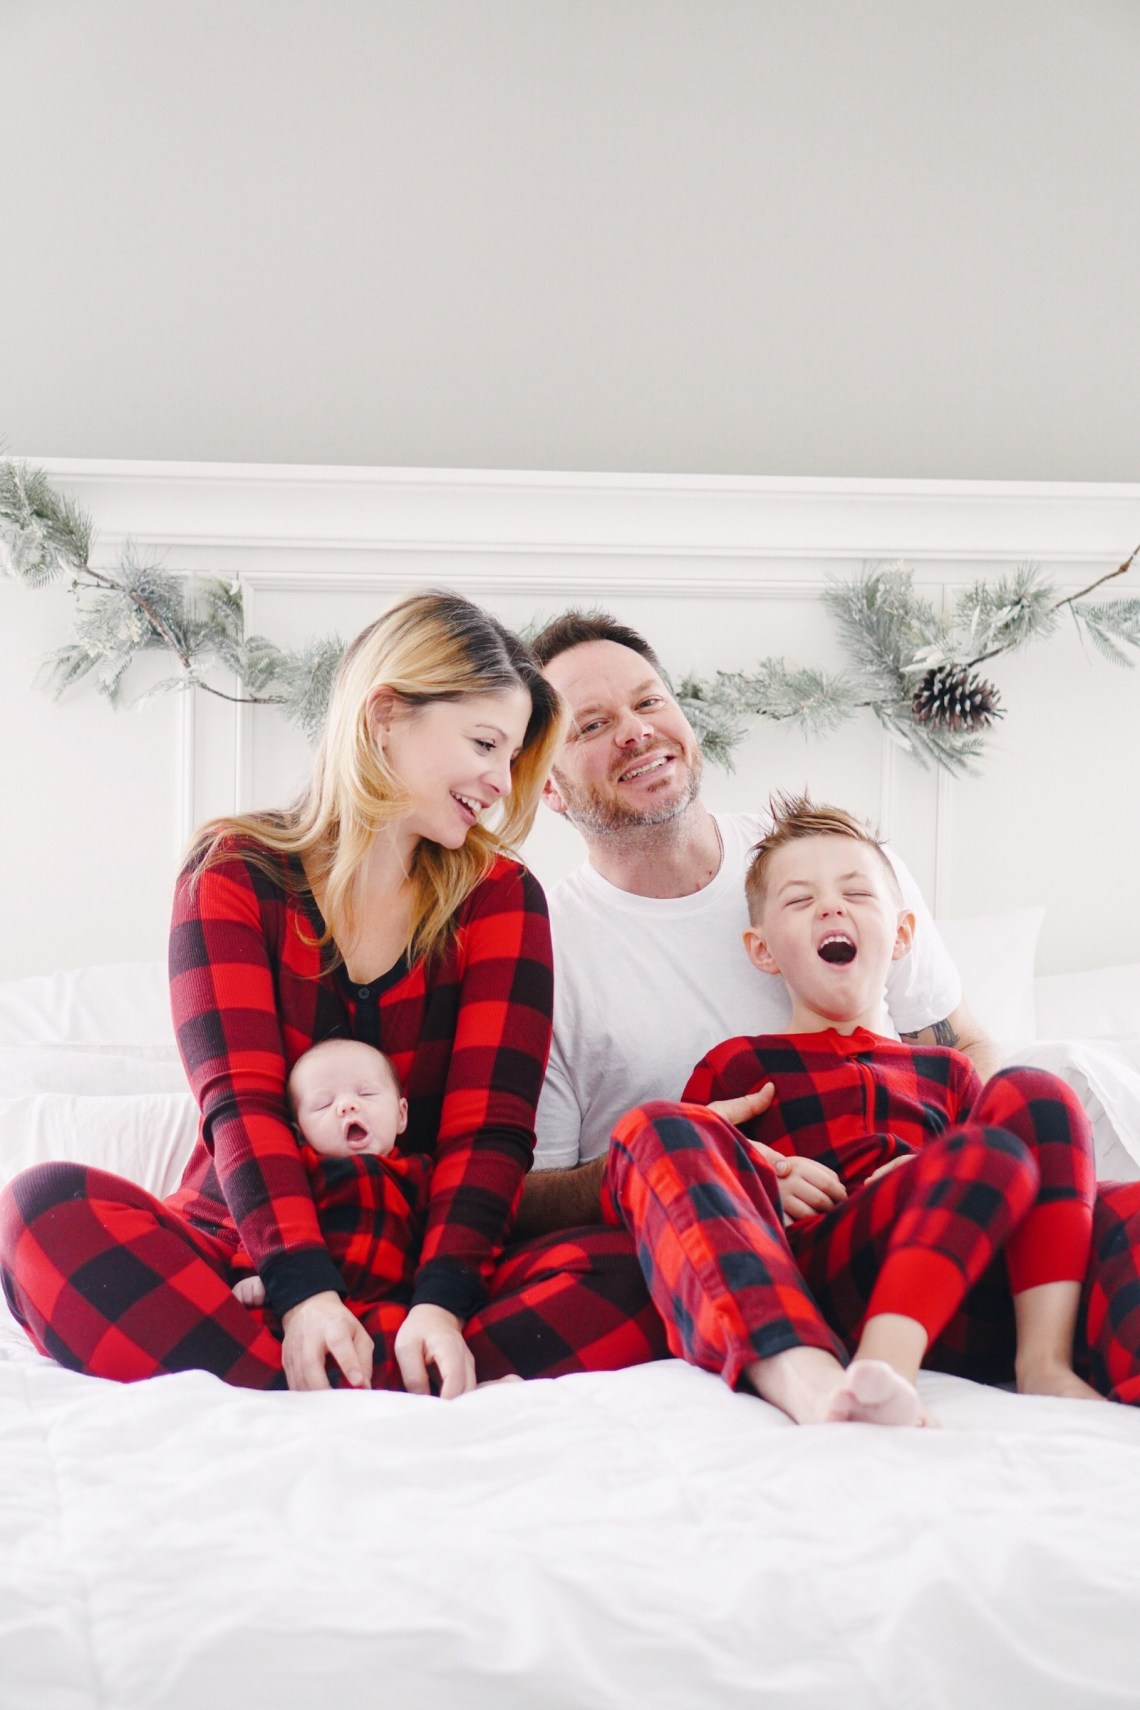 Matching Family Christmas Pajamas - Holiday traditions via Misty Nelson @frostedevents